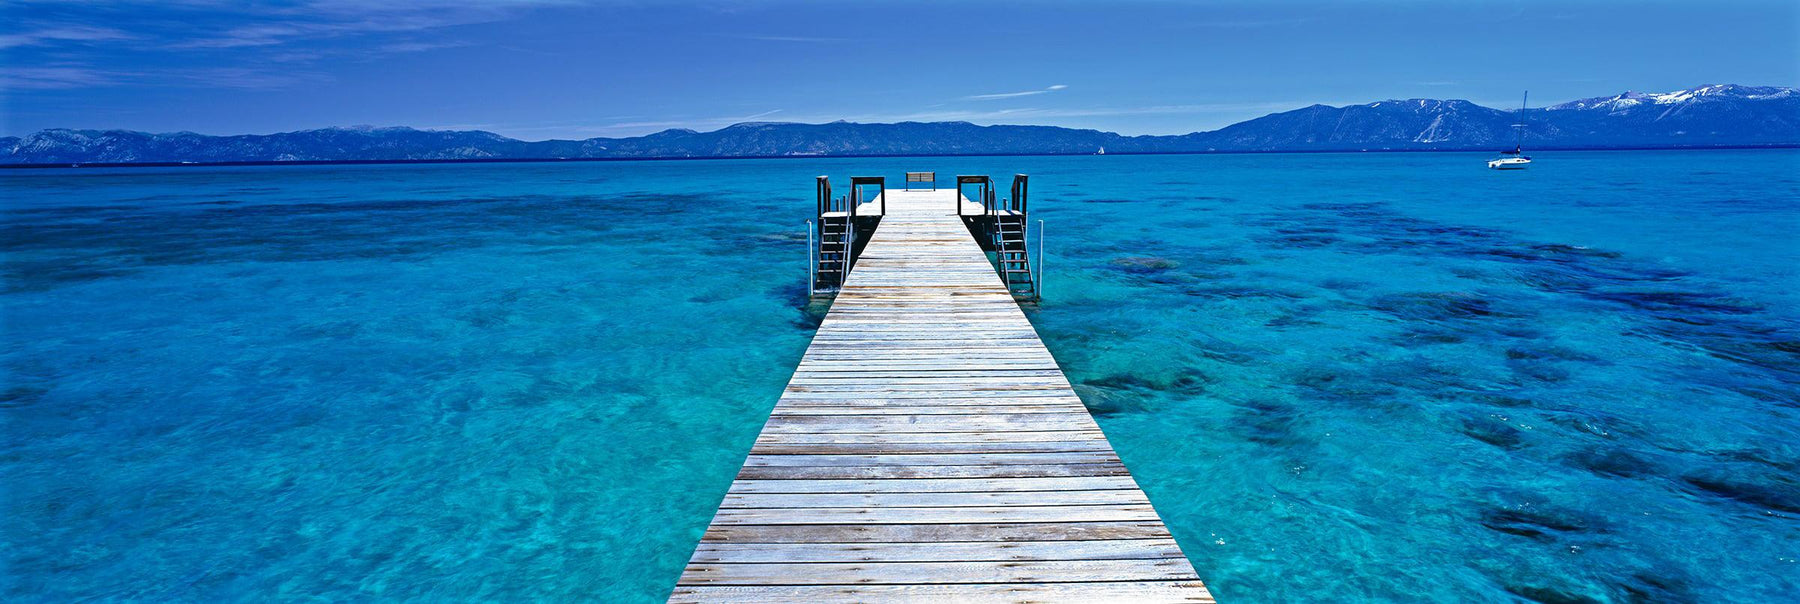 White wooden jetty stretching over the turquoise waters of Lake Tahoe California